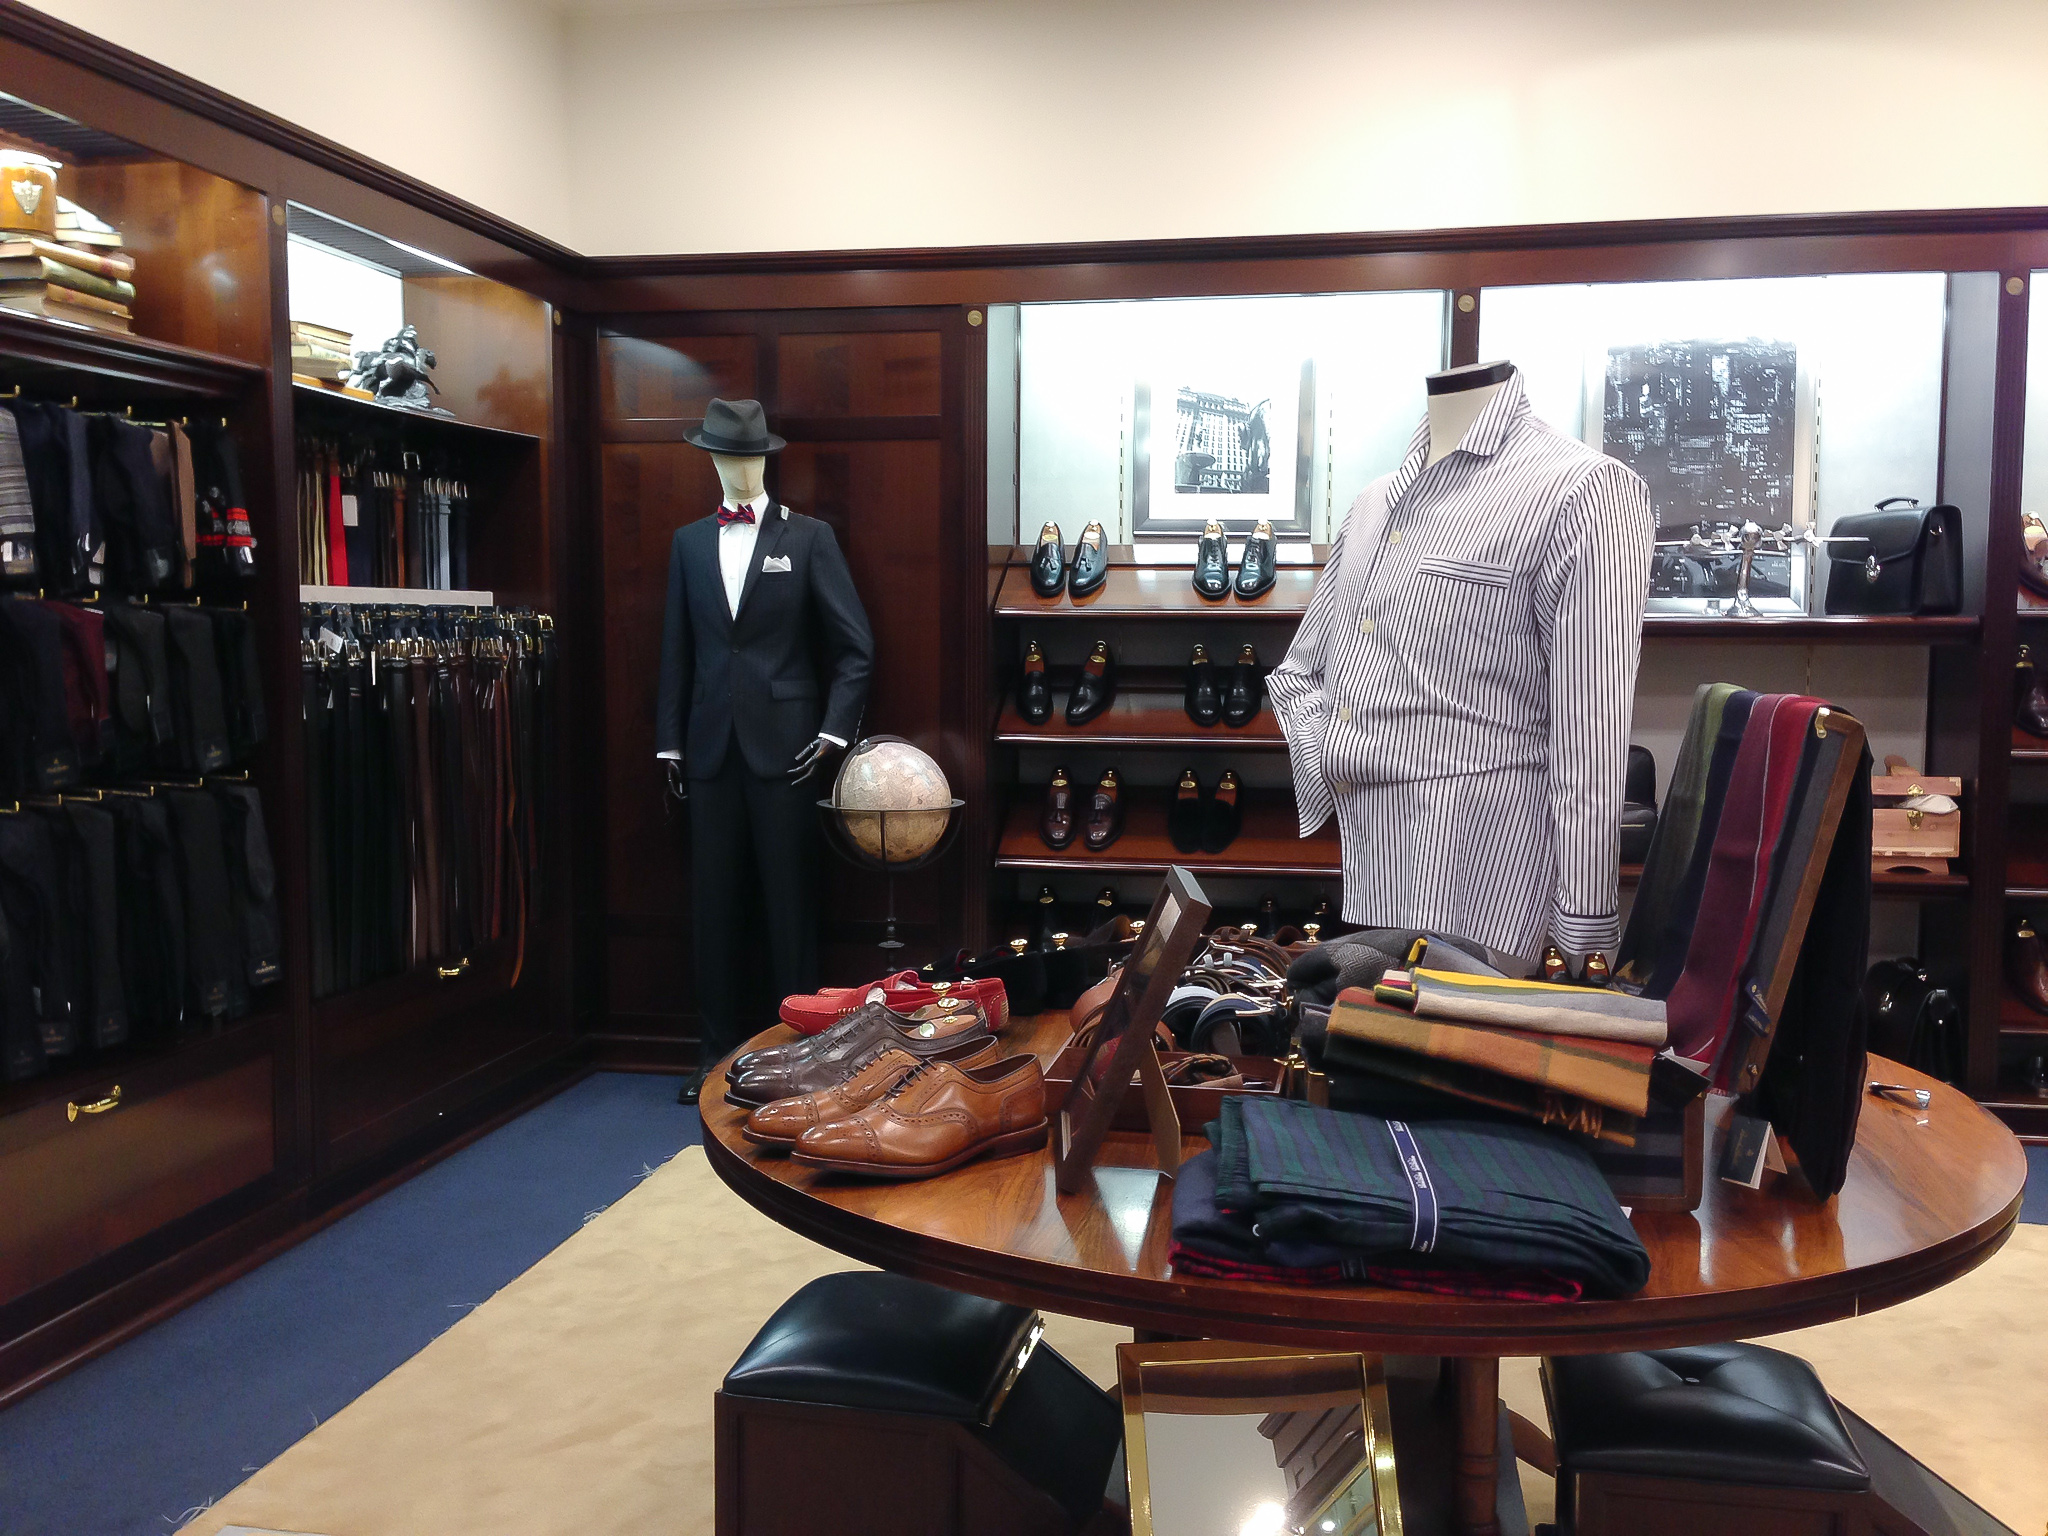 Classic menswear at Brooks Brothers in London. Photo by alphacityguides.